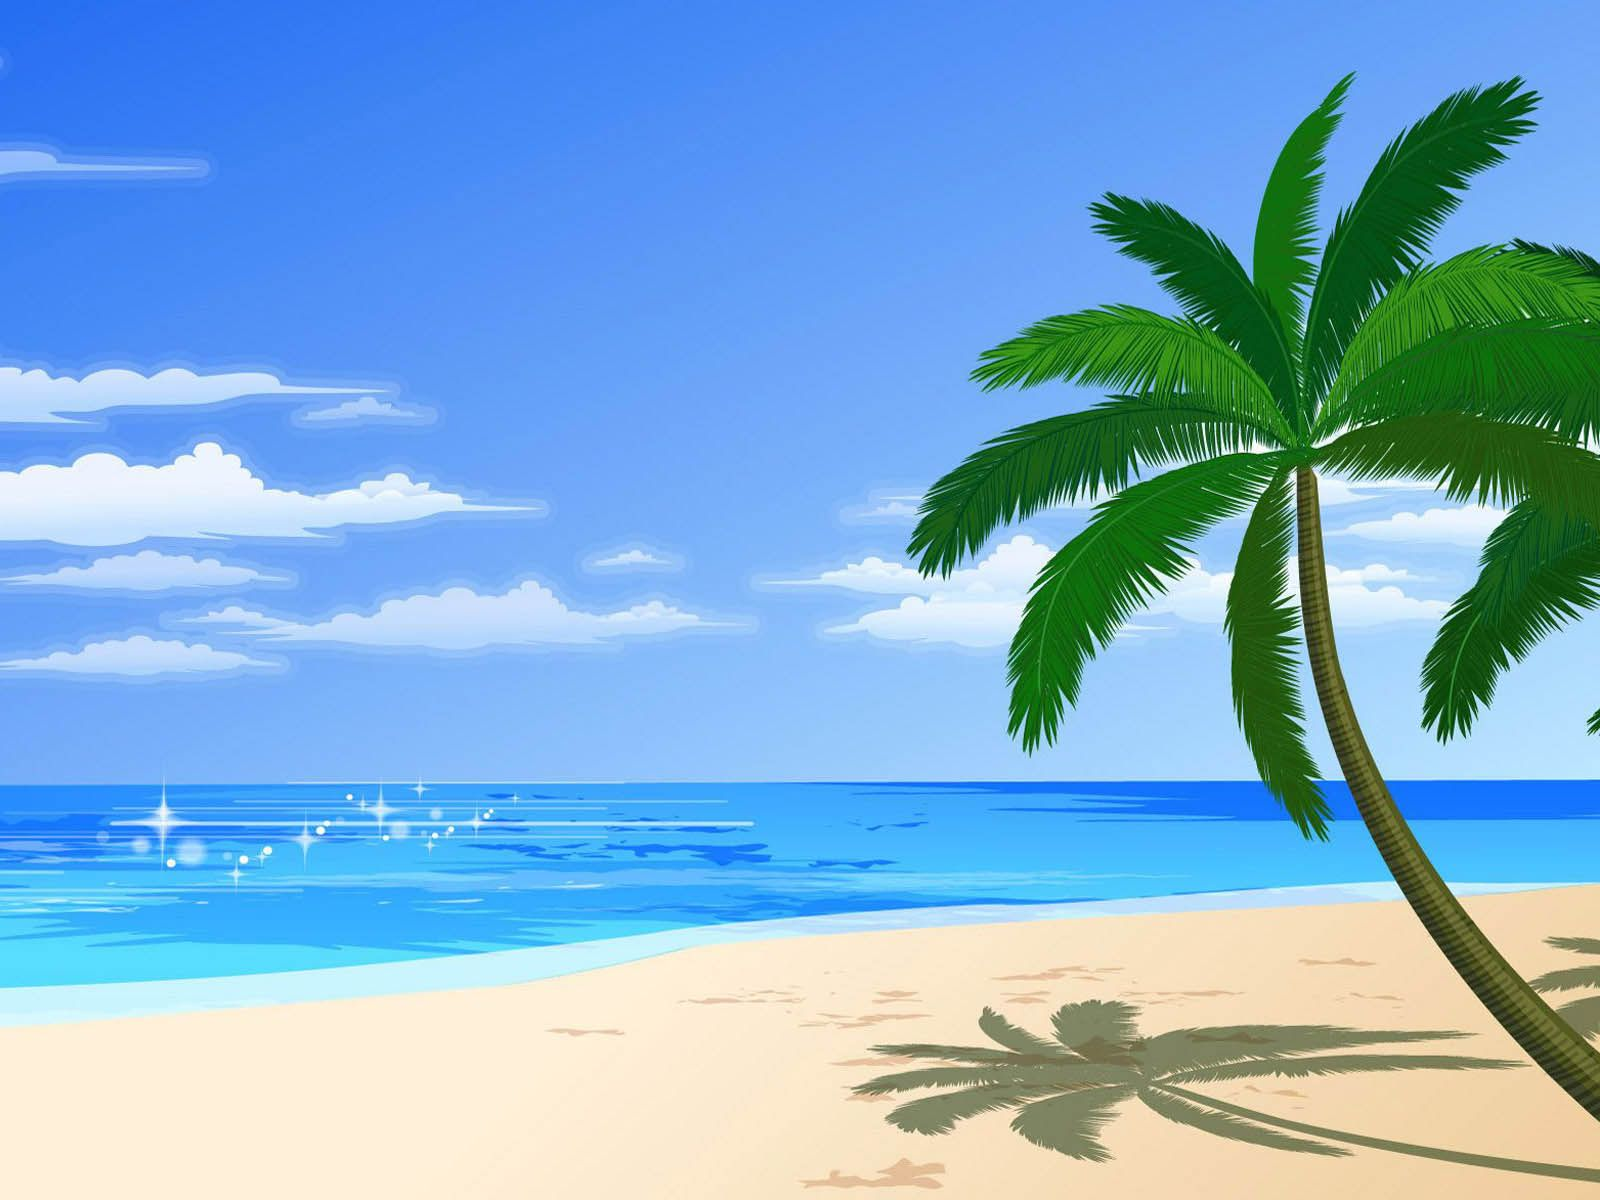 West palm beach clipart picture WEST PALM BEACH, FLORIDA - MARCH 6: Nicole Shinton and GB ... picture